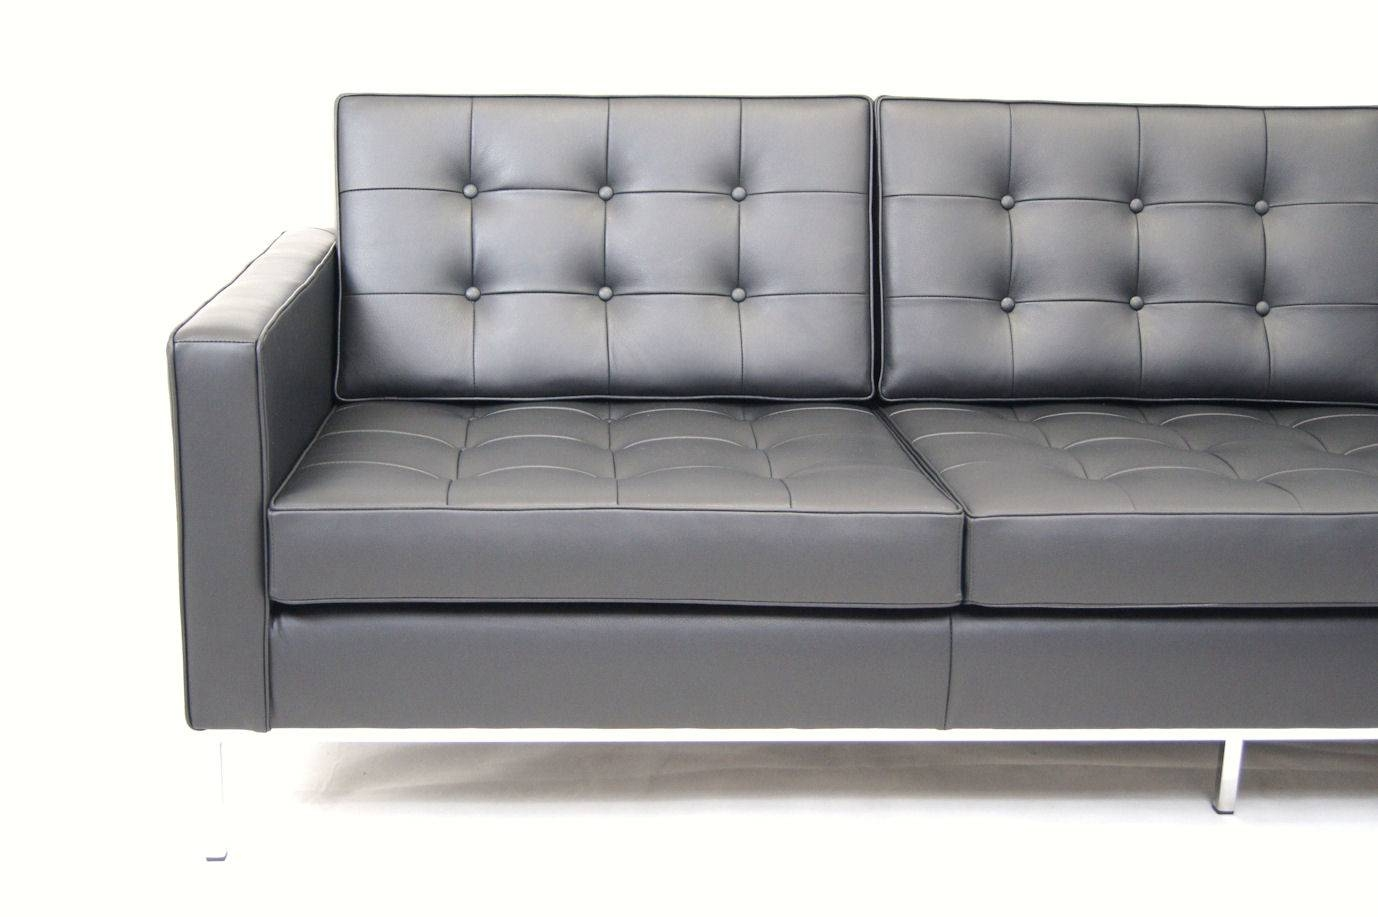 Decoration Knoll Florence Sofa With Florence Knoll Sofa Florence for Florence Knoll Leather Sofas (Image 2 of 25)